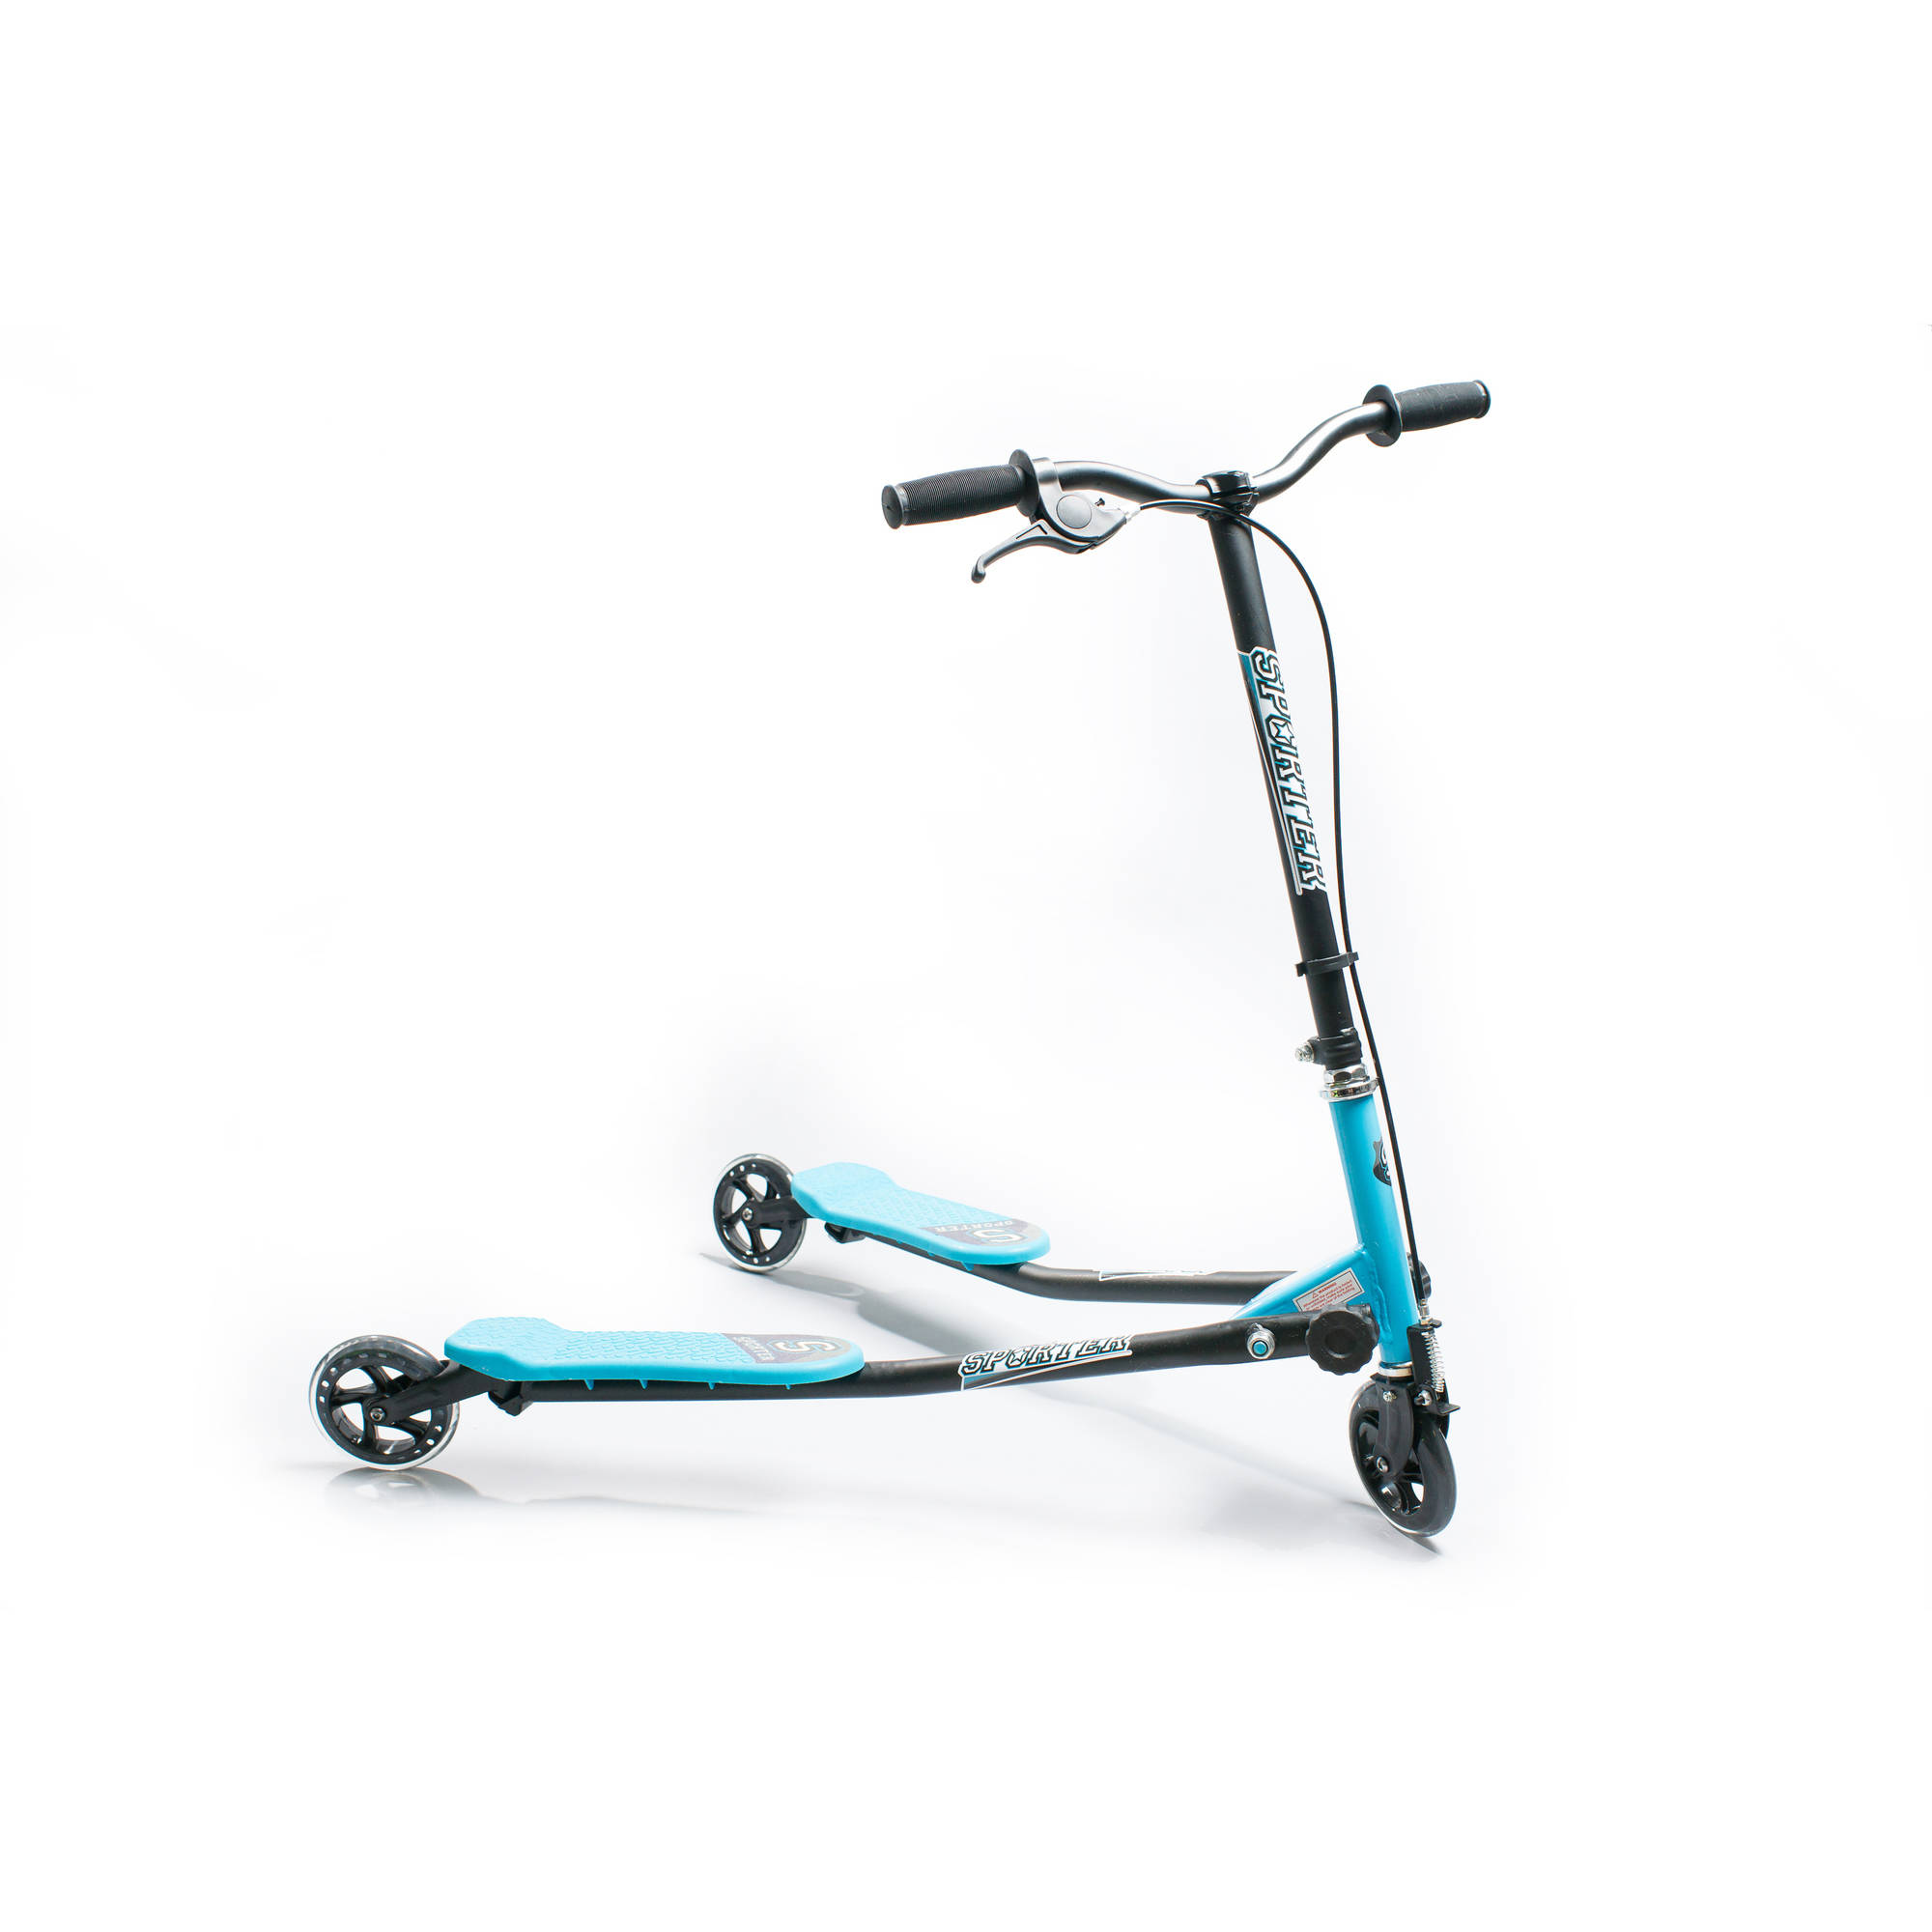 Image of Sporter 1 Scooter, Blue